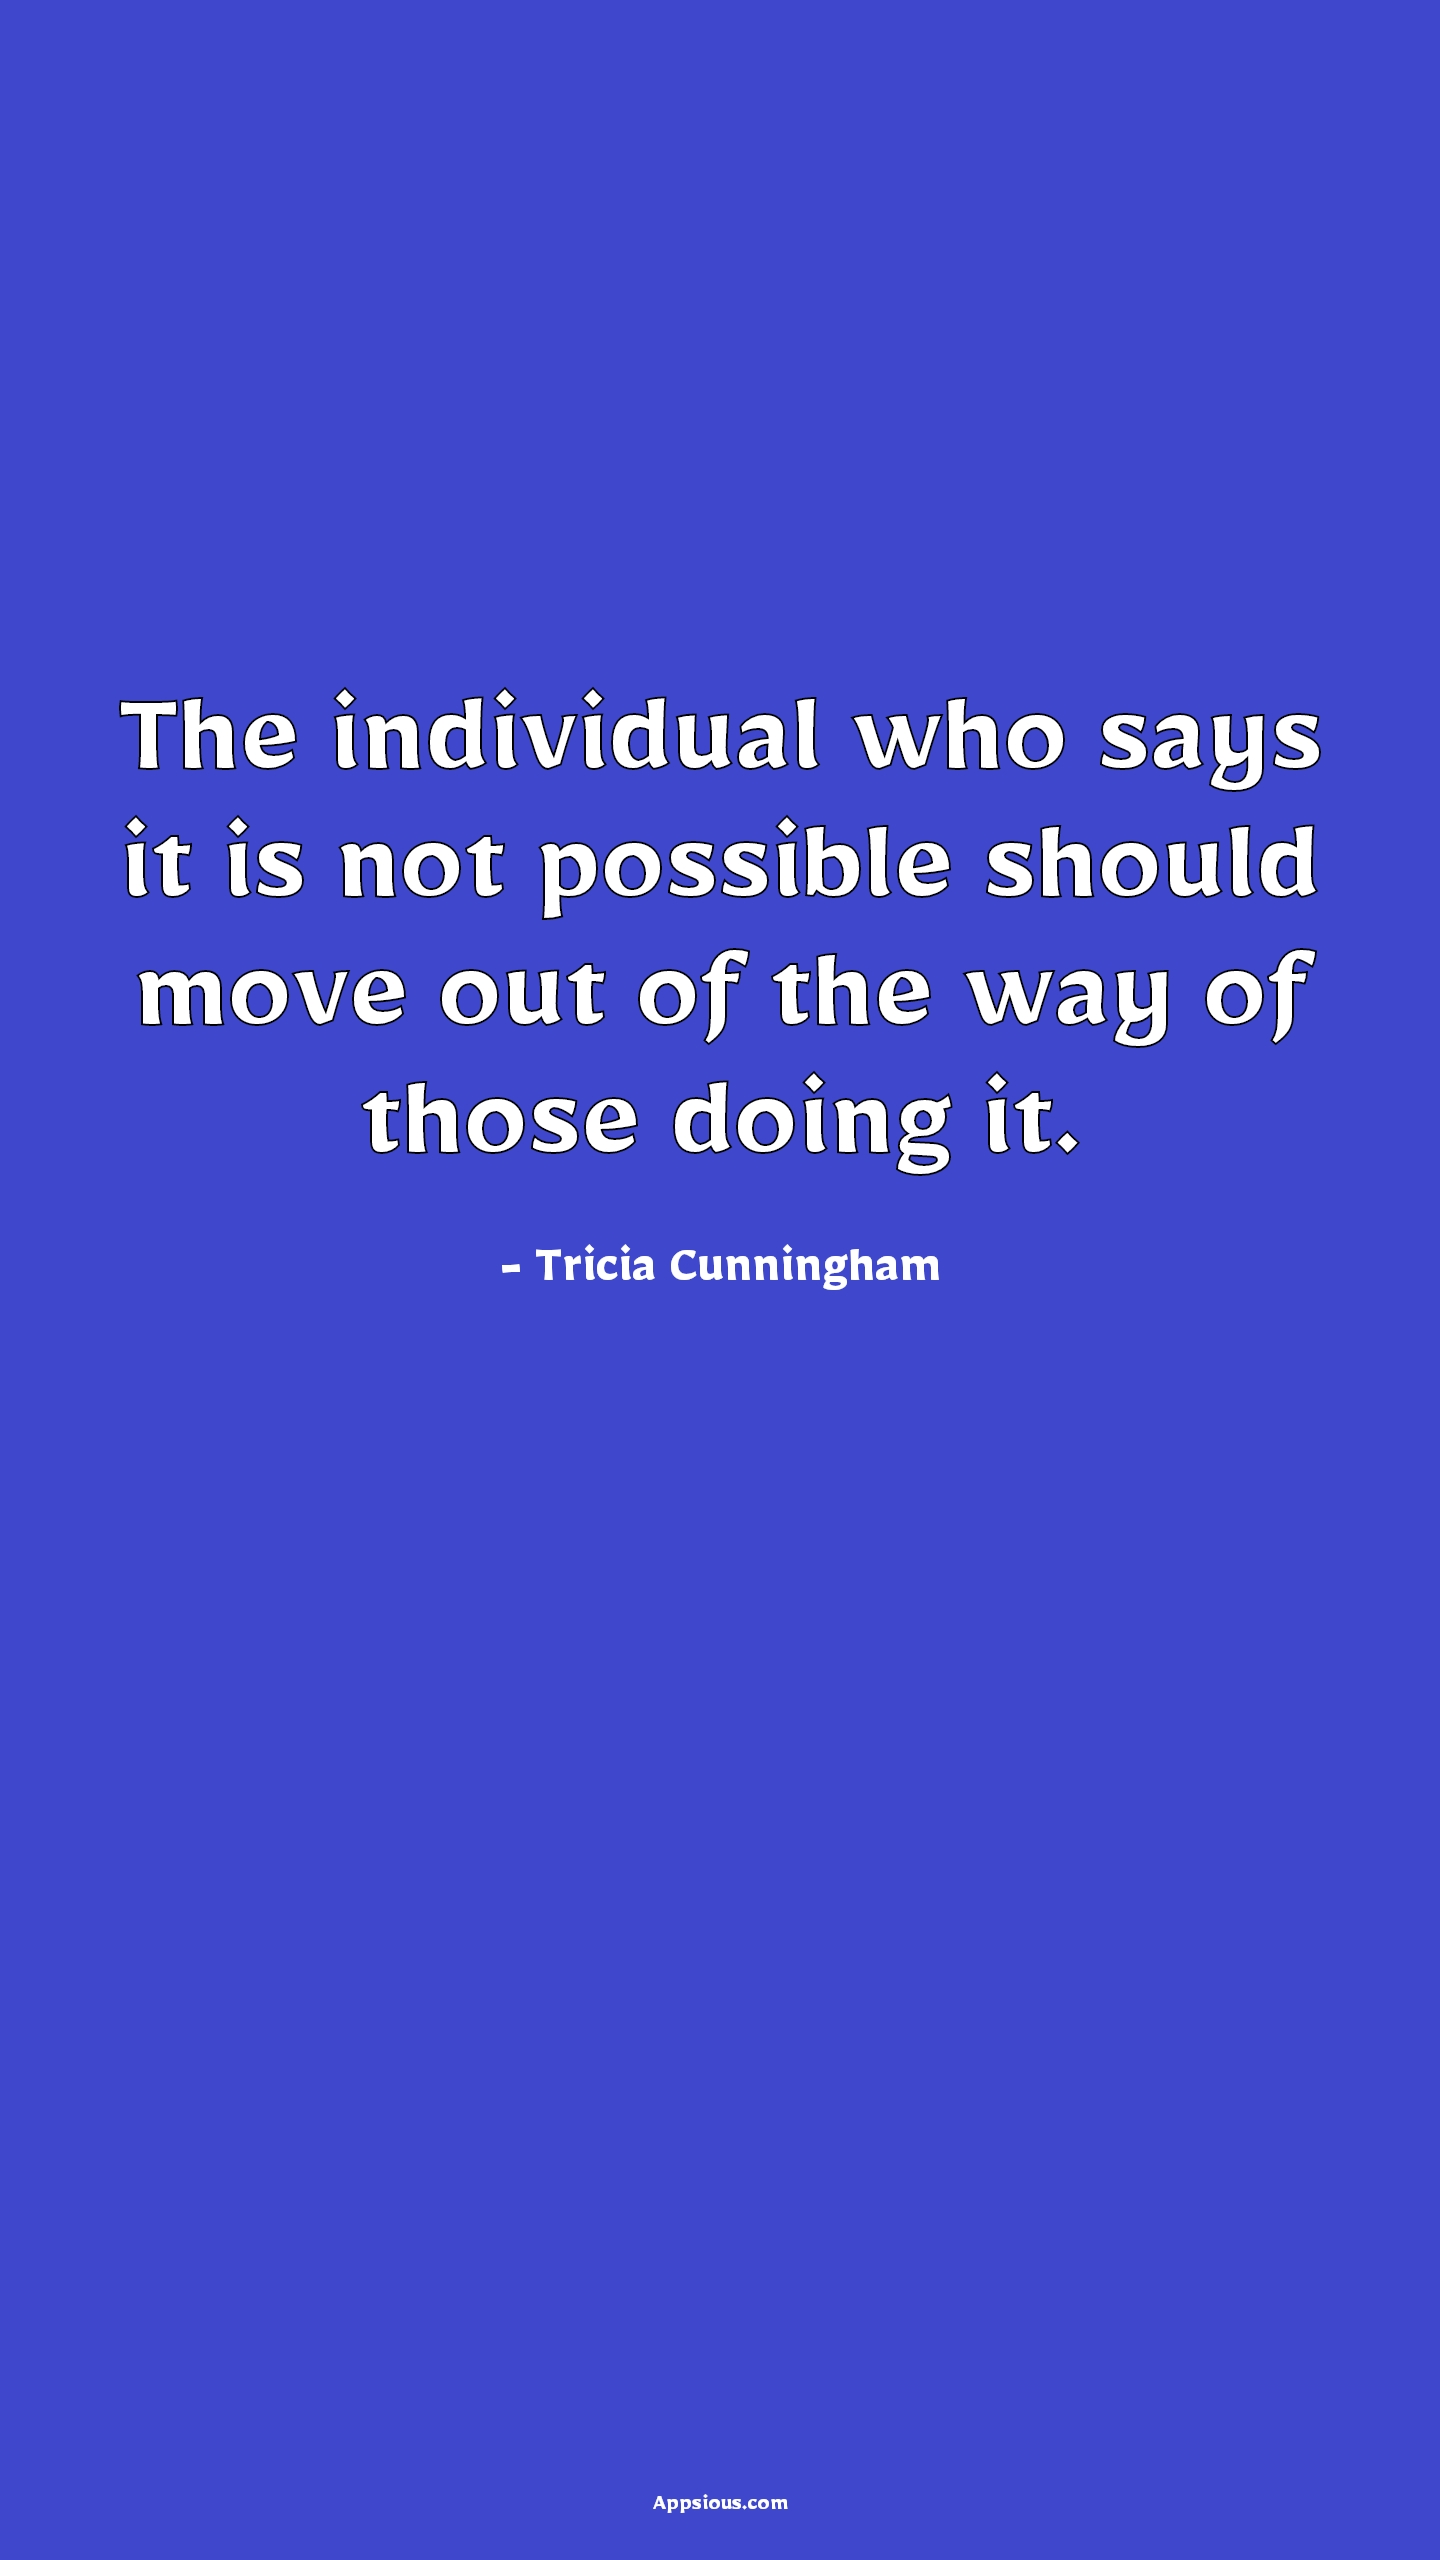 The individual who says it is not possible should move out of the way of those doing it.